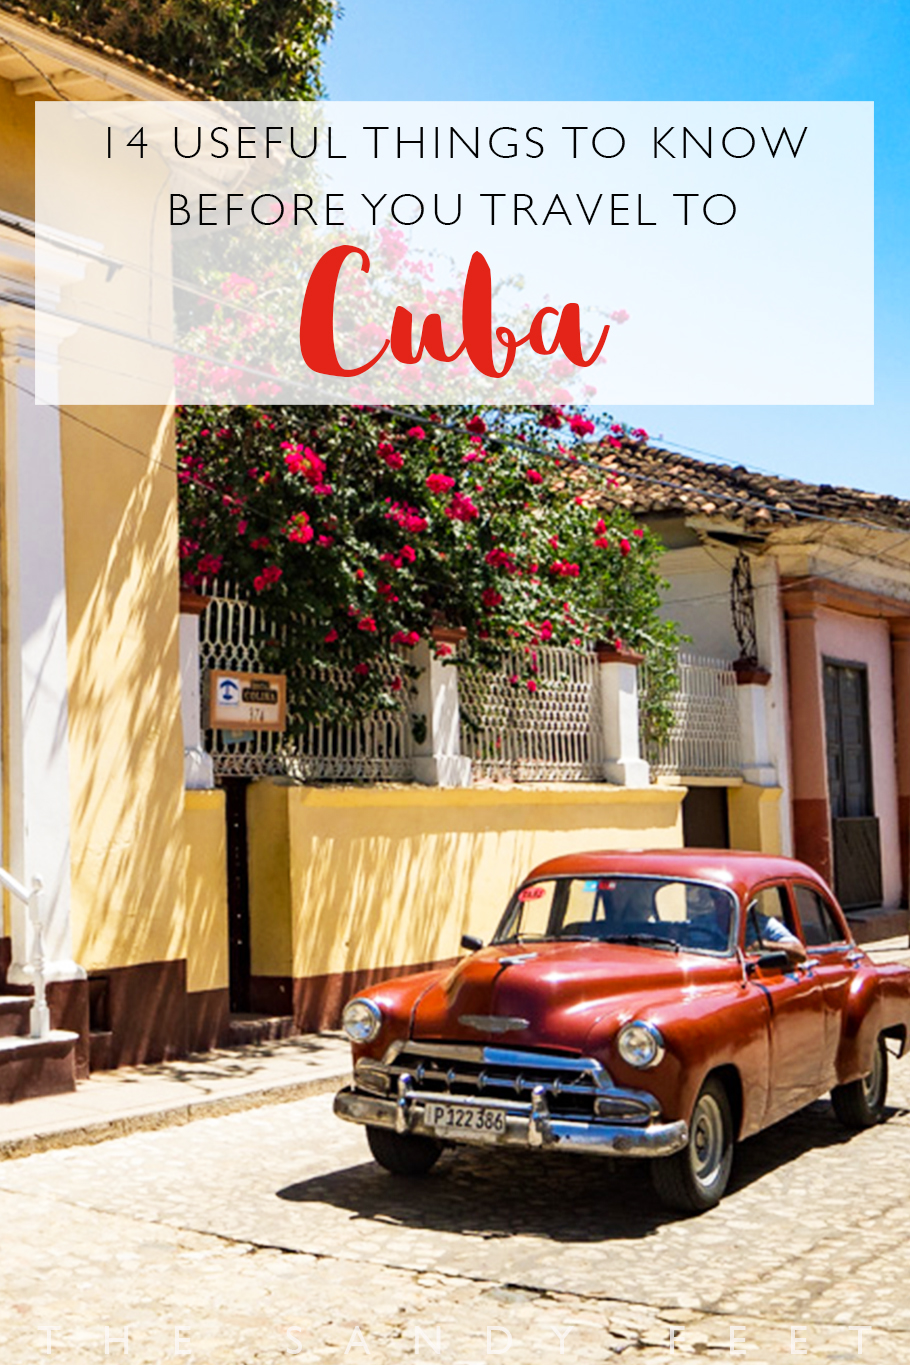 14 Useful Things To Know Before You Travel To Cuba | Cuba Travel Tips